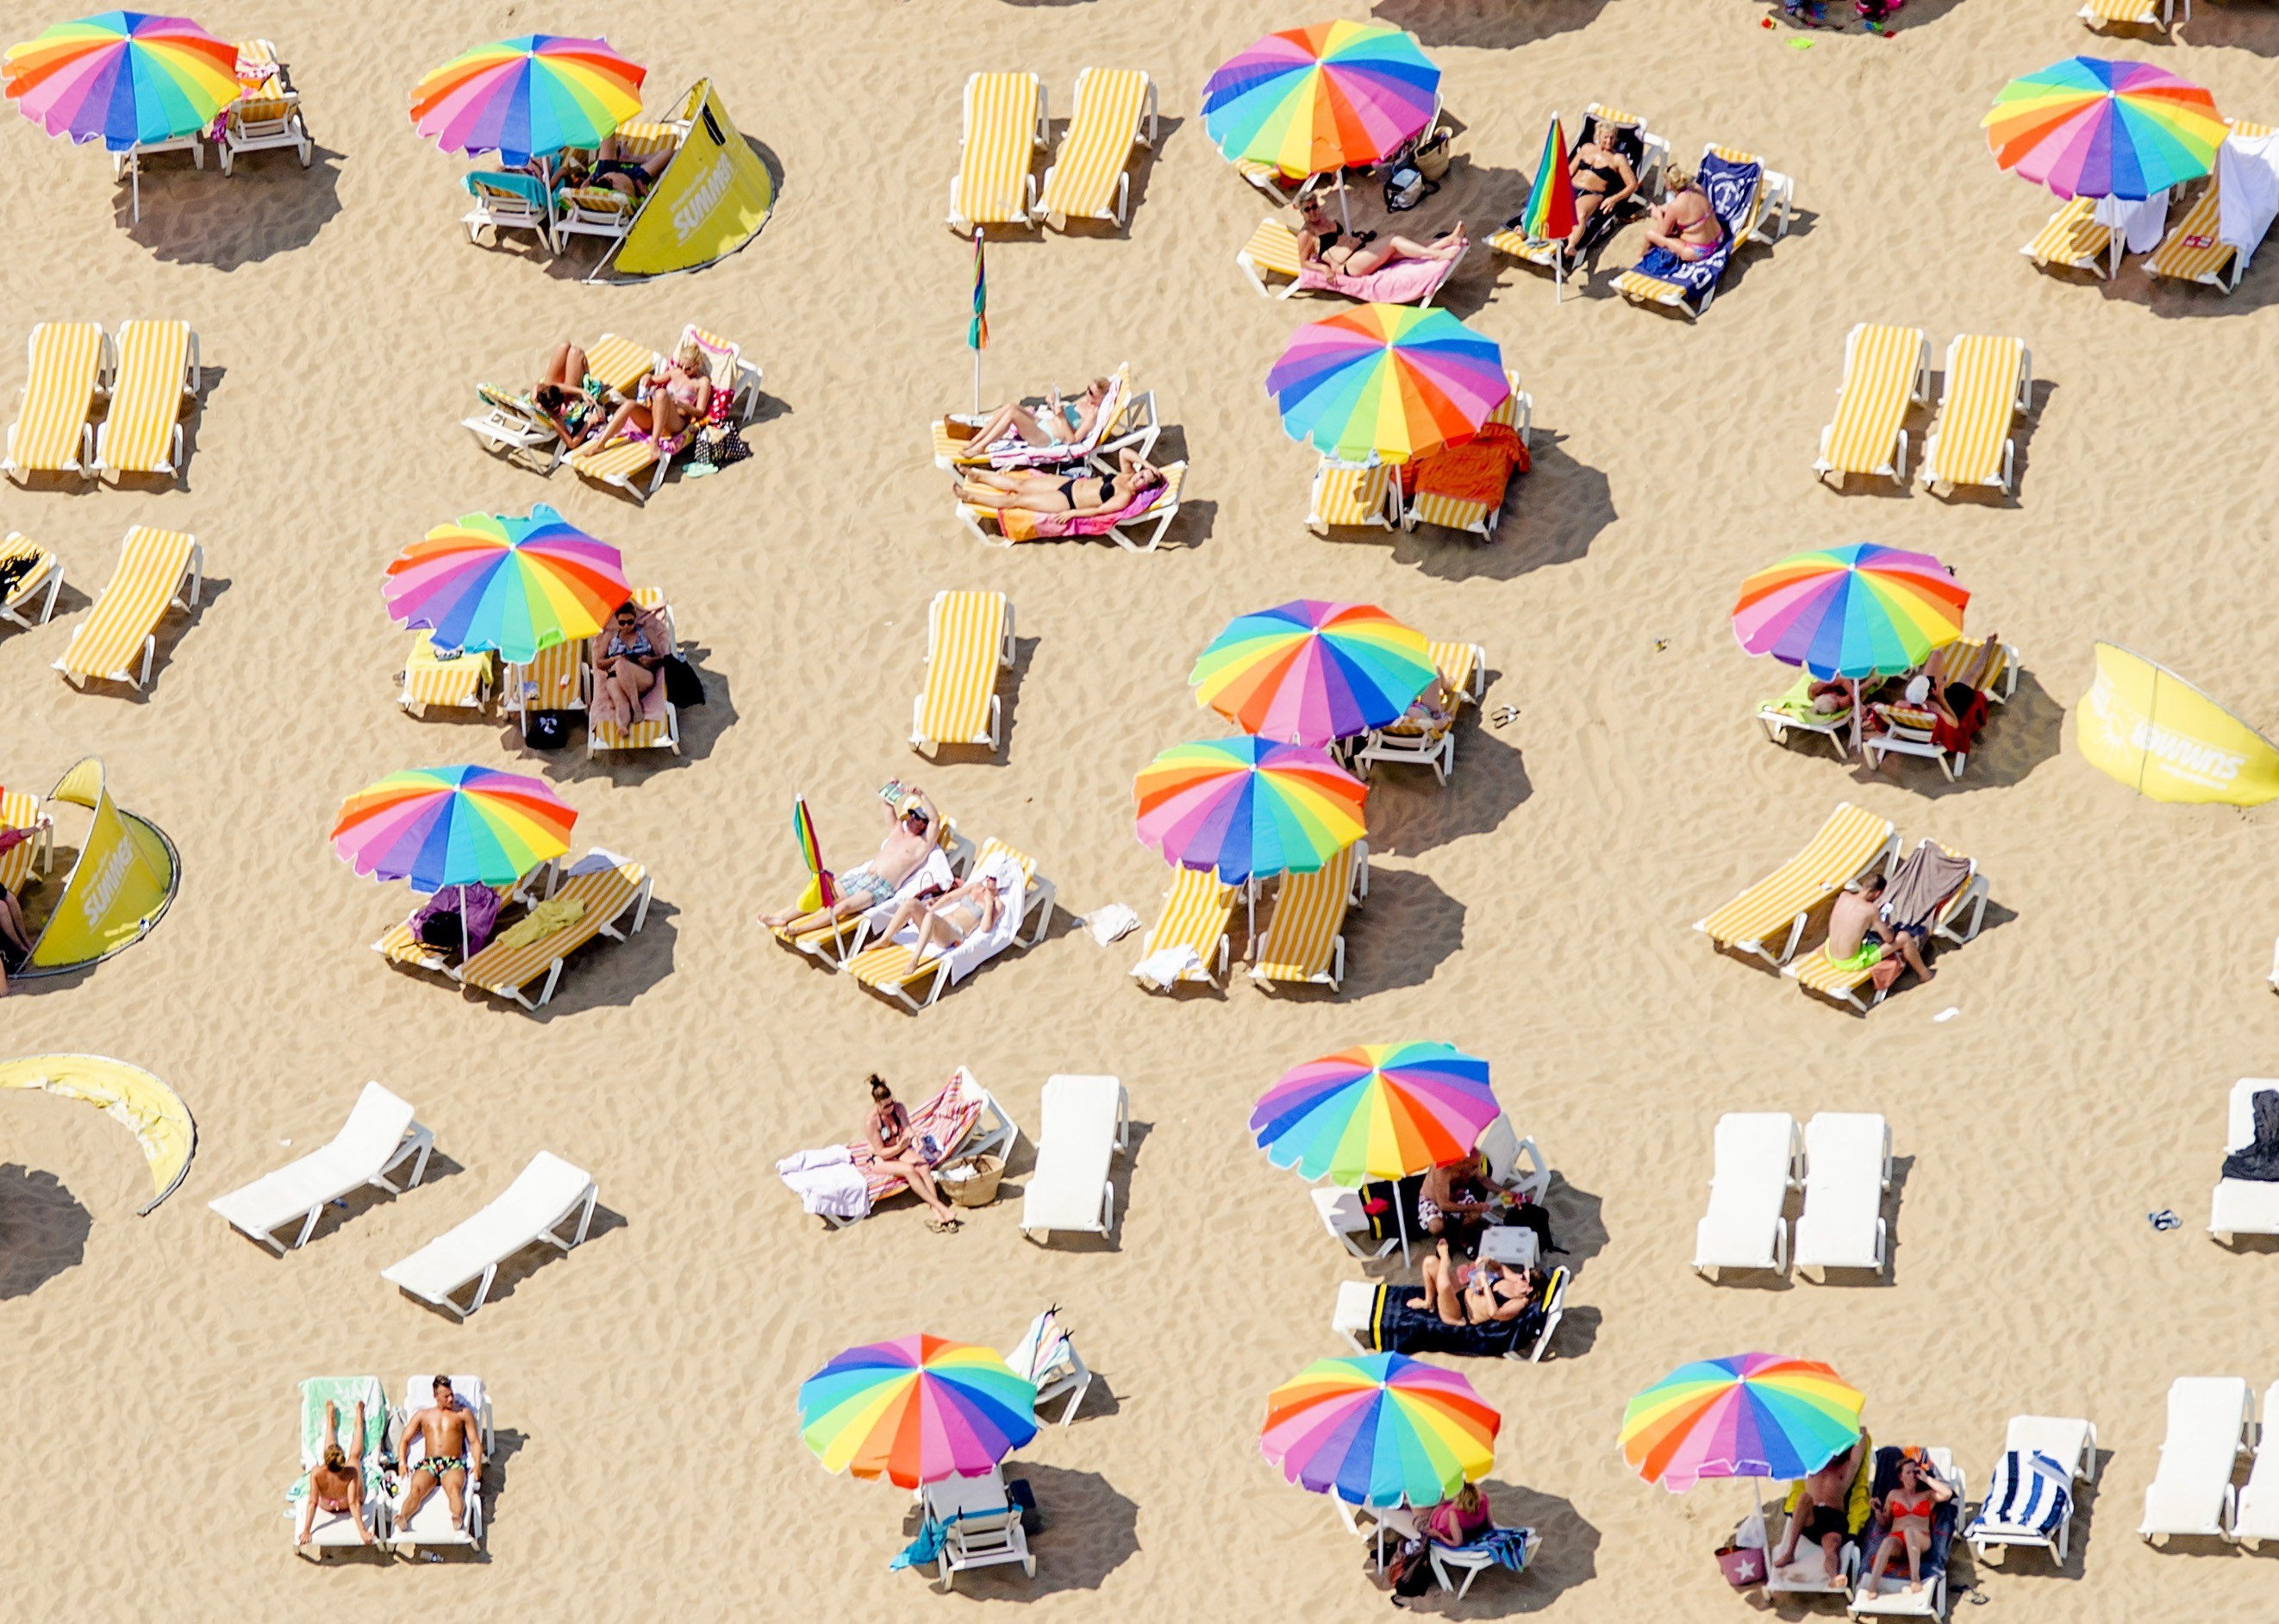 An aerial view shows sunbathers sitting under colorful umbrellas on the beach in Scheveningen, the Netherlands, on July 1, 2015, on a warm summer day.